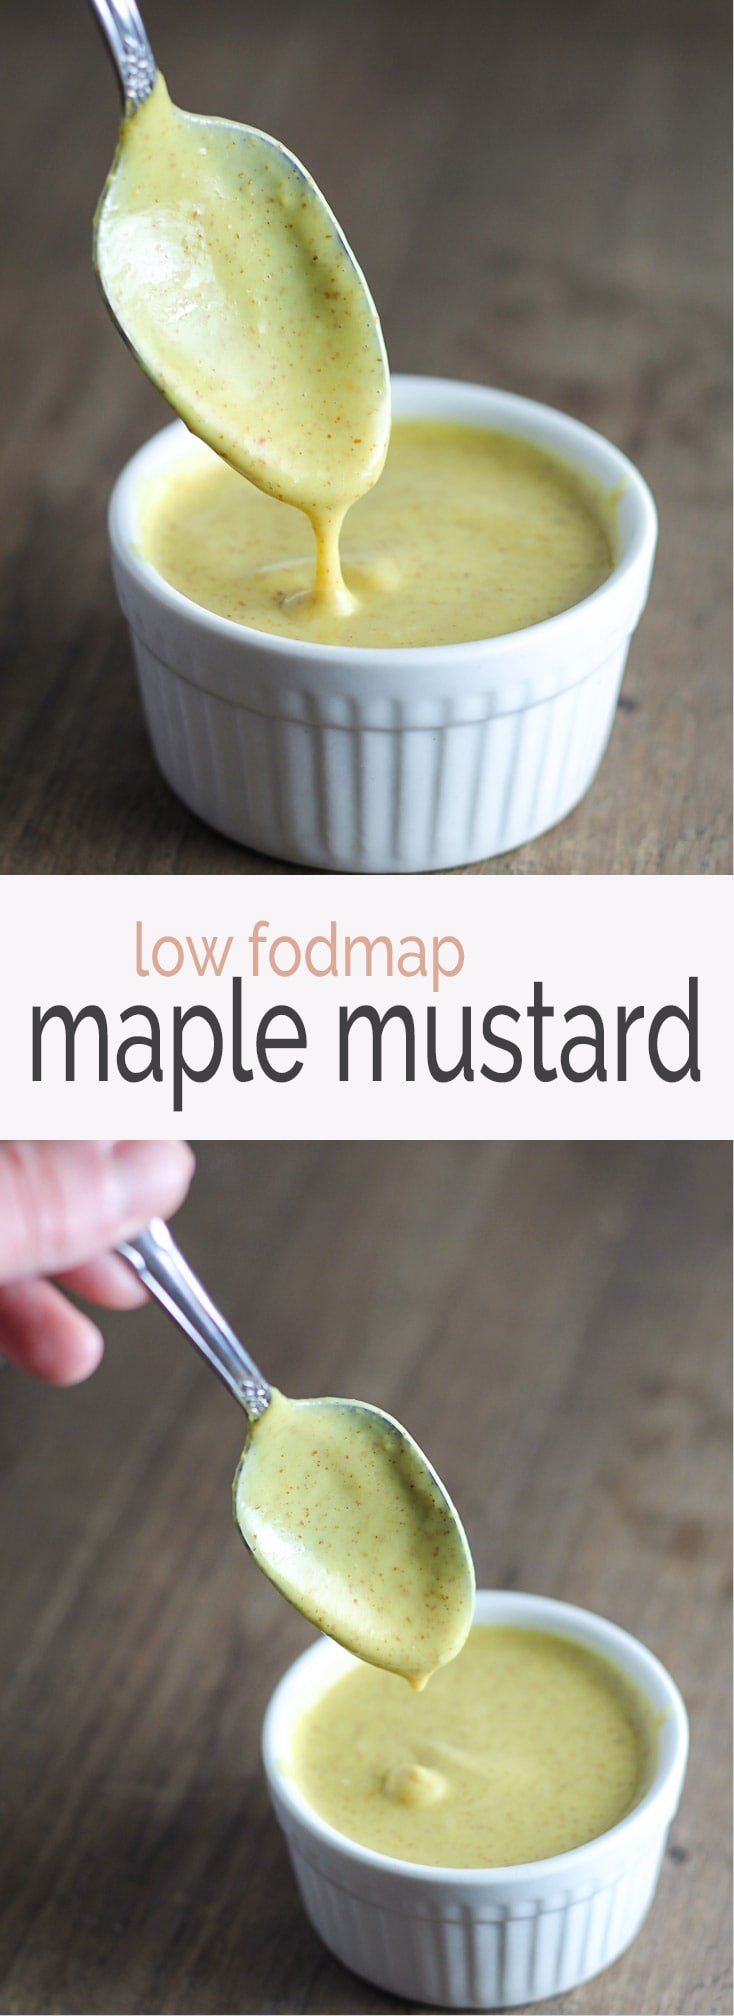 The BEST dip ever! This creamy maple mustard pairs perfectly with our low fodmap chicken tenders!